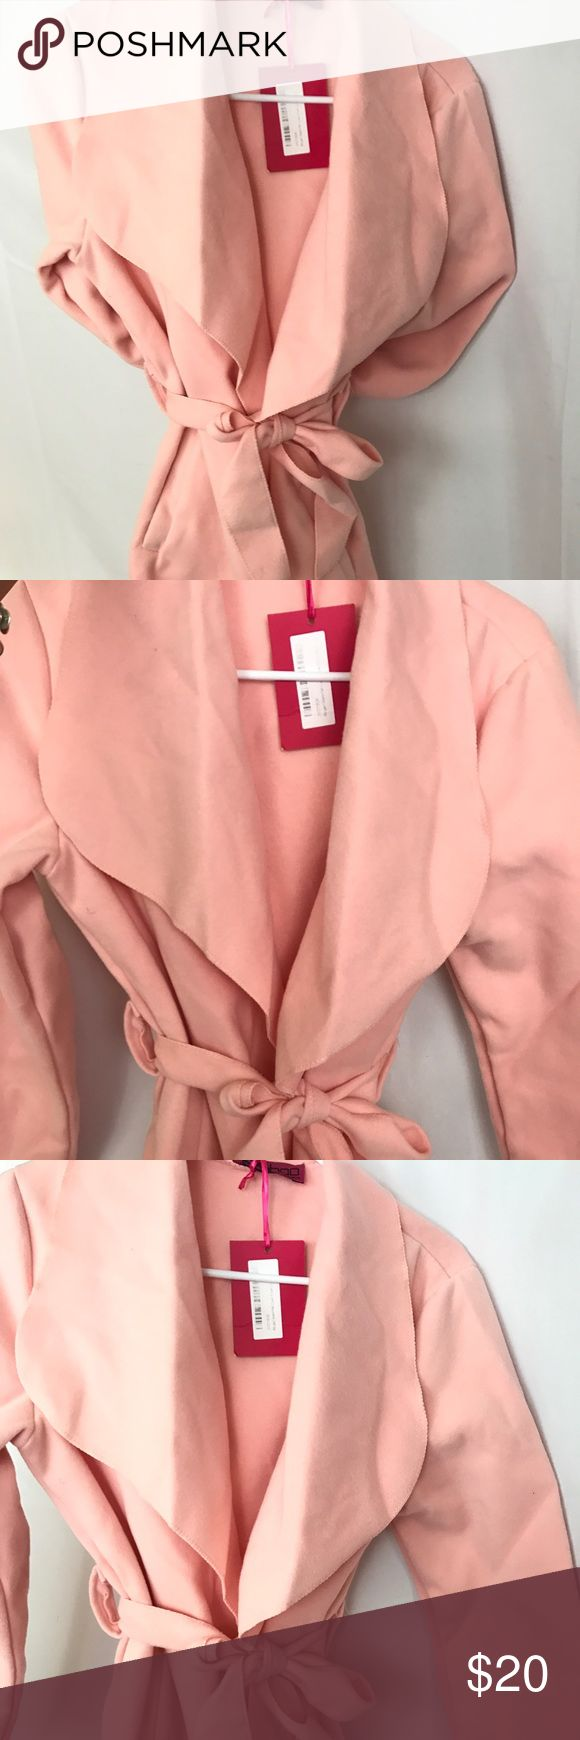 Pink waterfall trench coat Link waterfall trench coat. Never been worn, tags still intact Boohoo Jackets & Coats Trench Coats